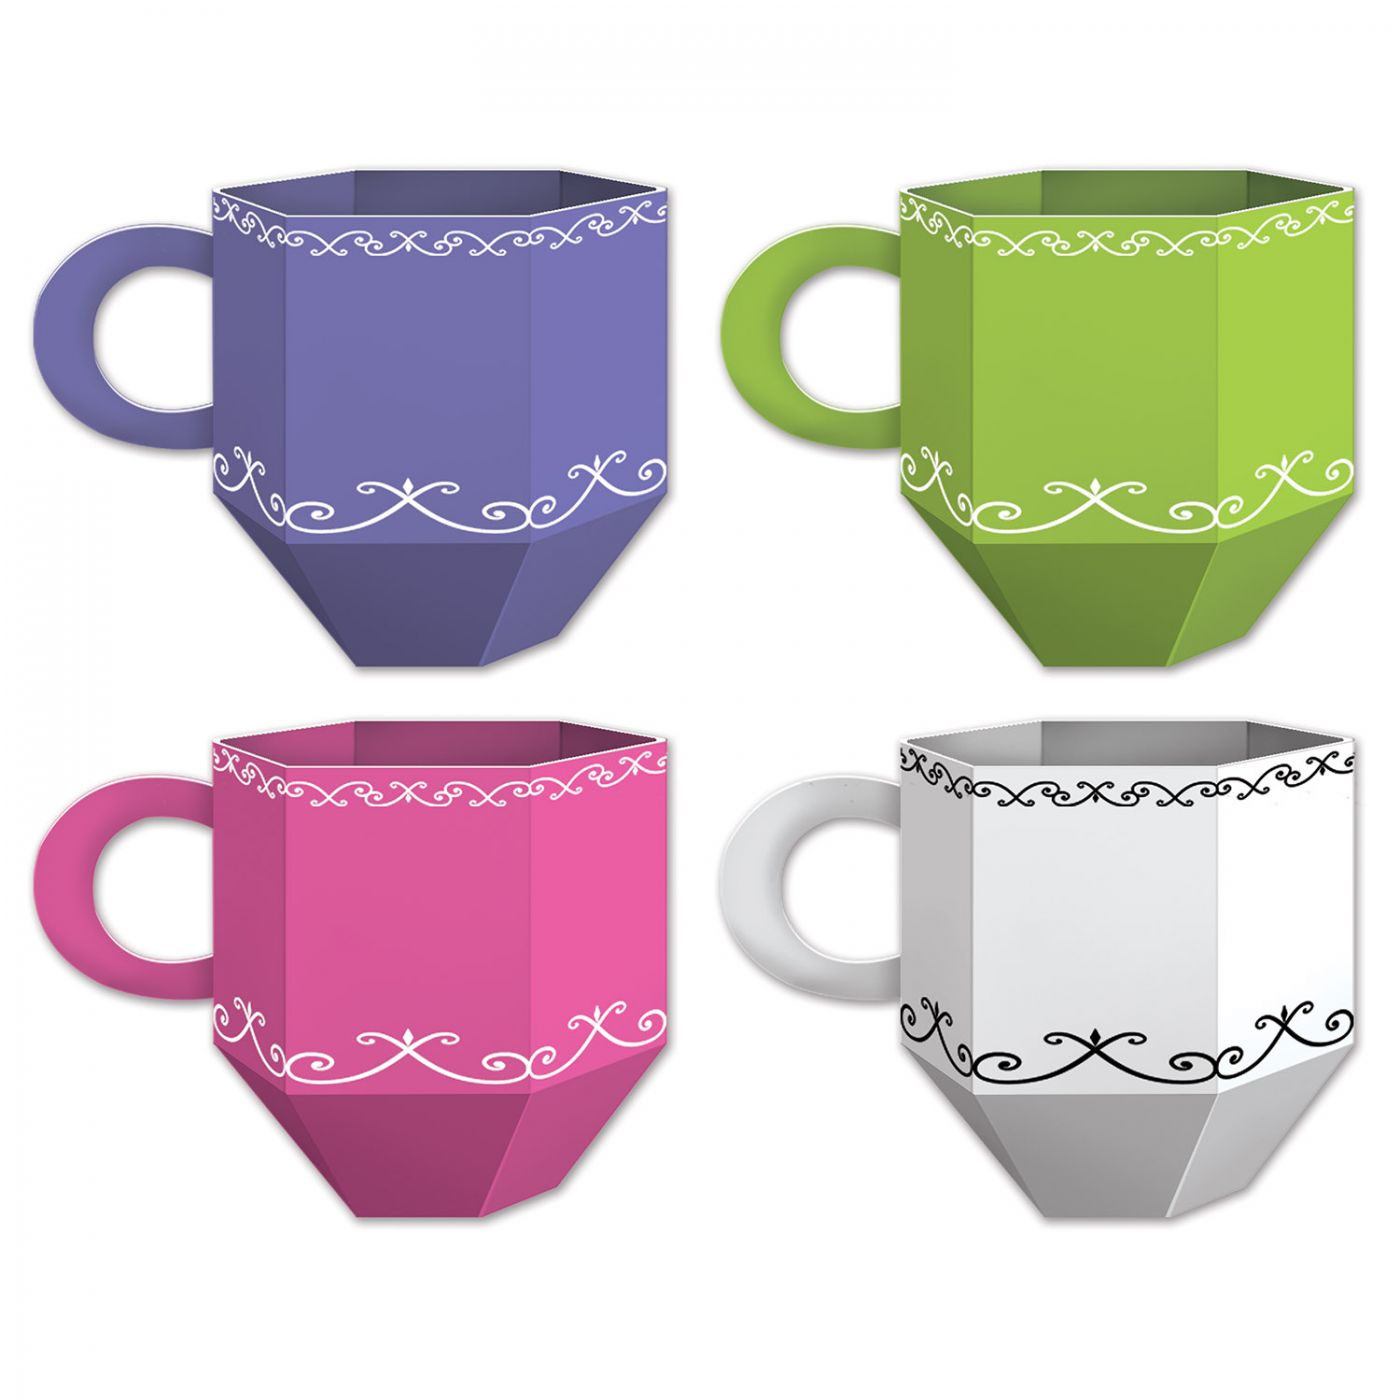 Teacup Favor Boxes image